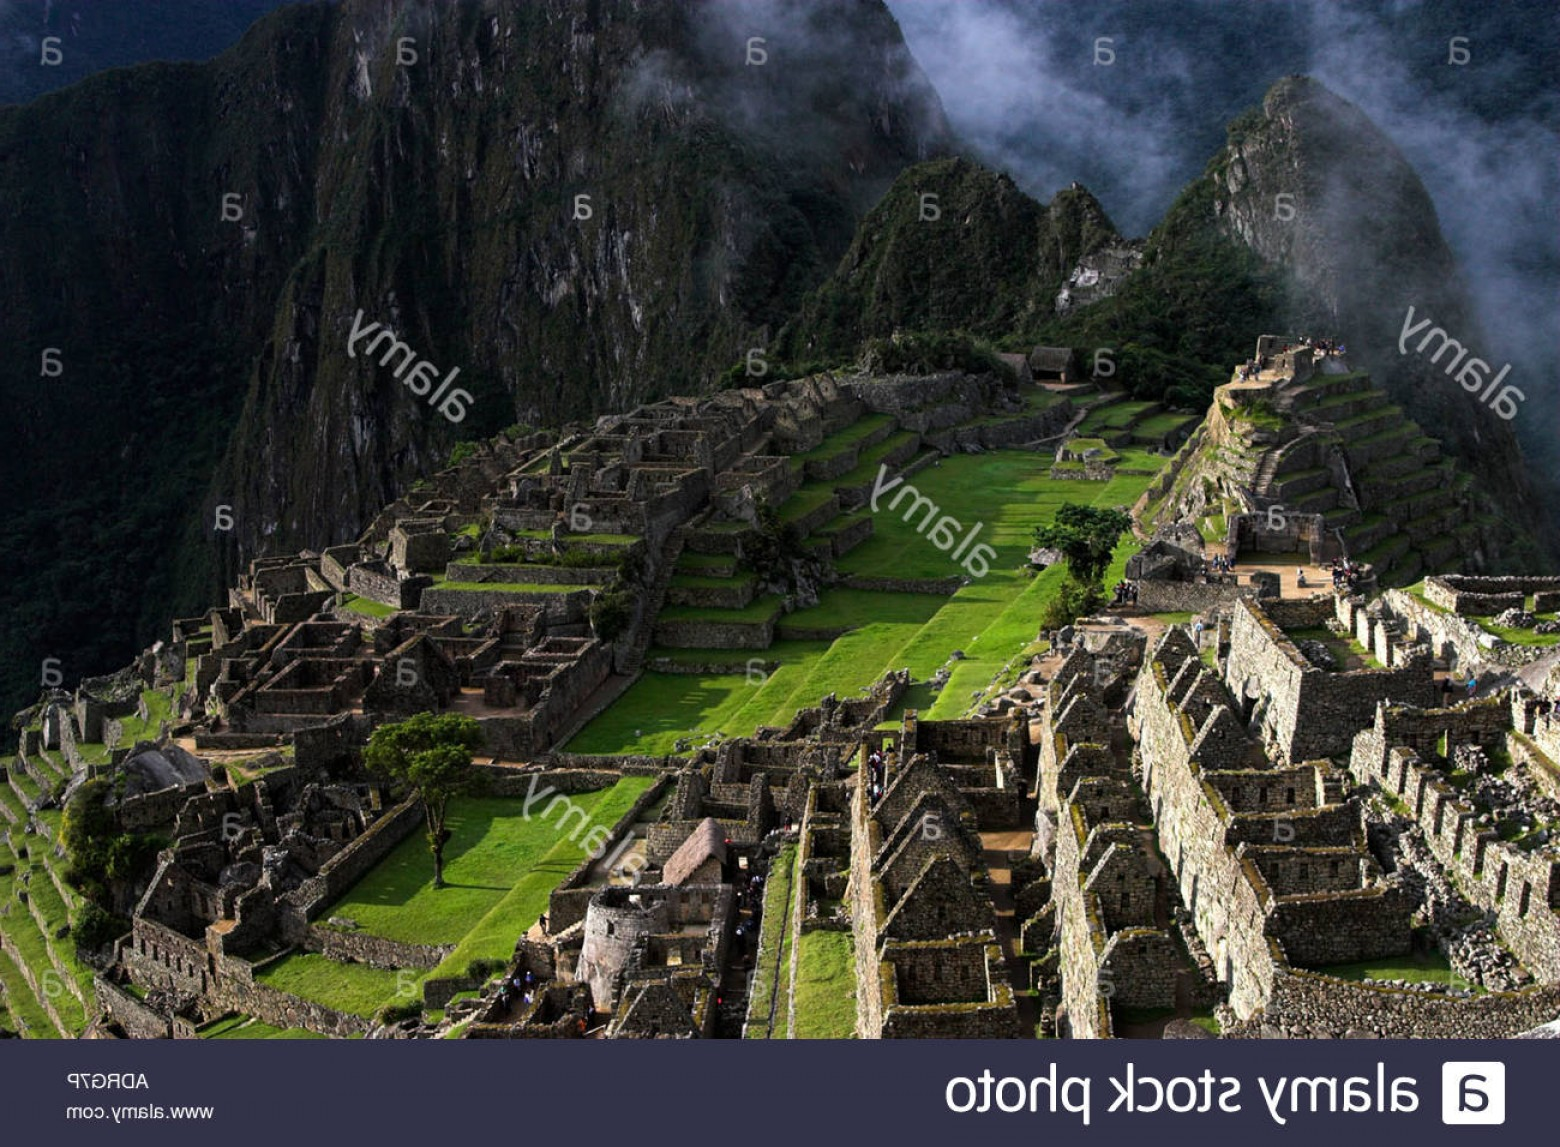 Vector South America Ancient Ruins: Stock Photo Machu Picchu Lost City Of The Incas Peru View Over Ancient Ruins South